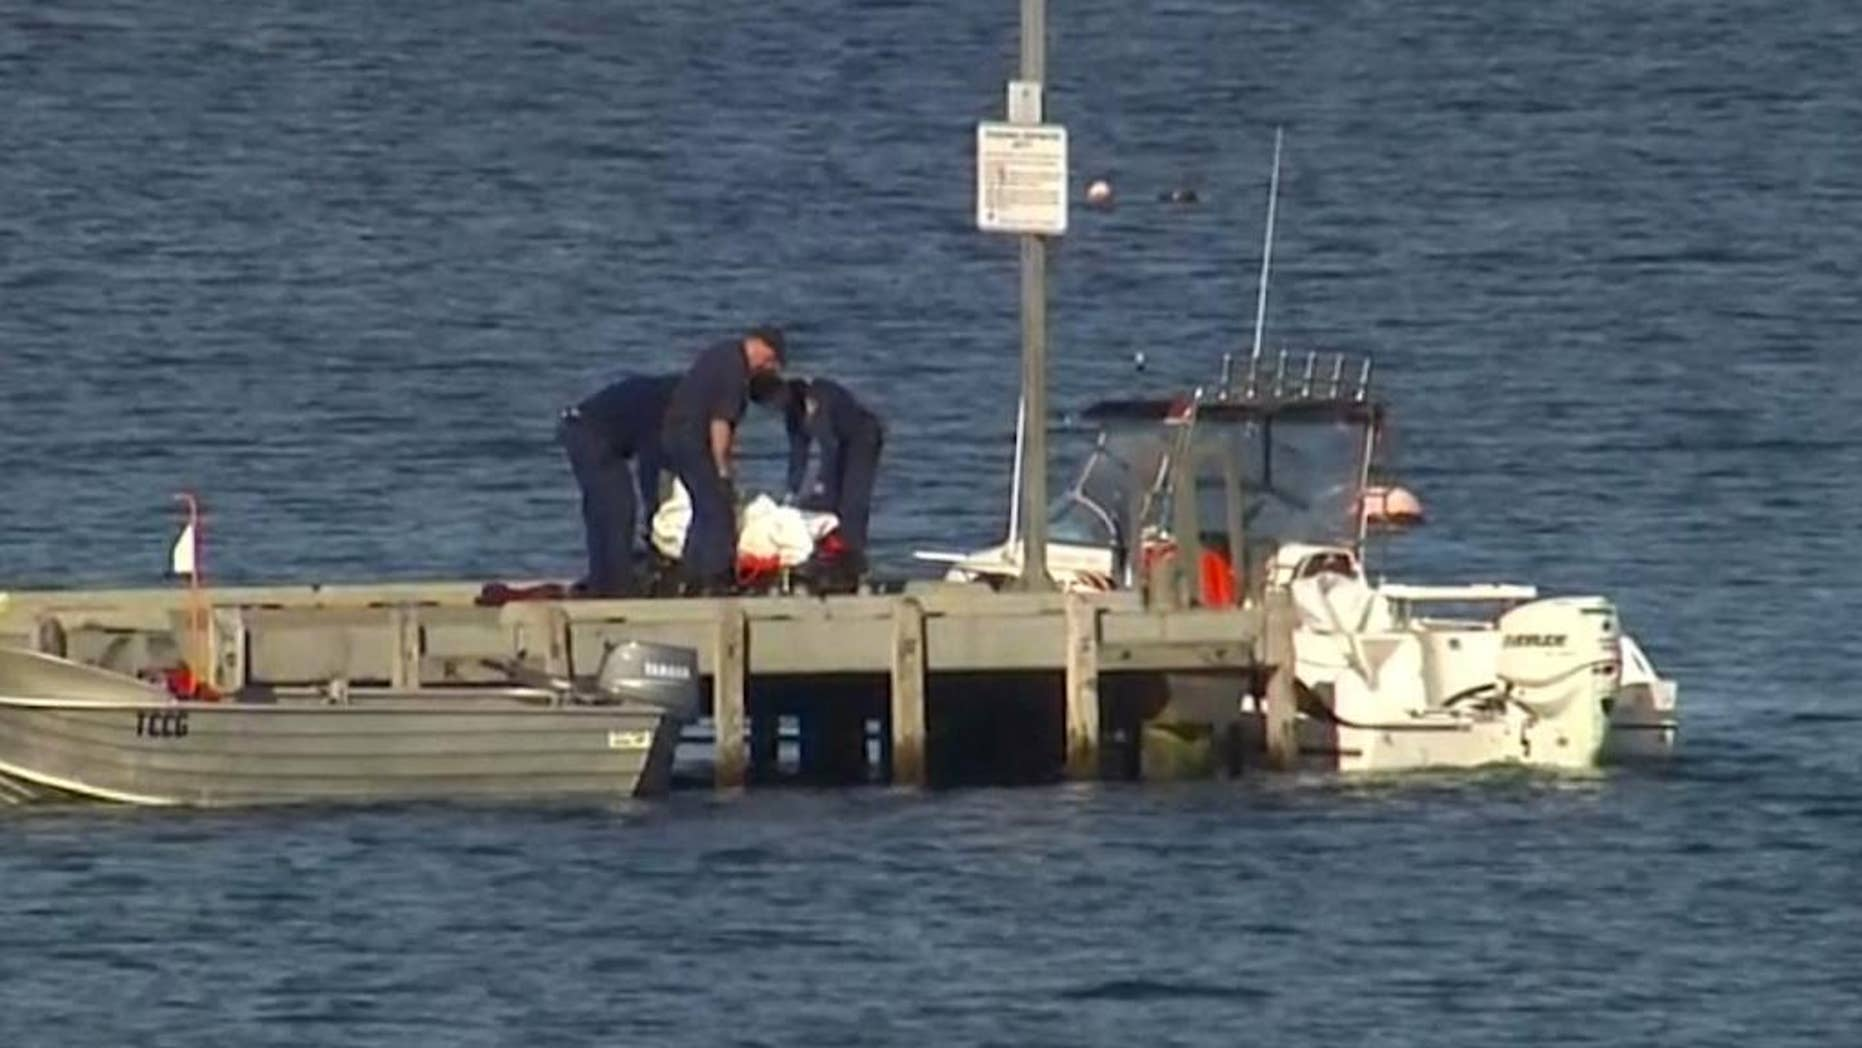 In this image taken from video, police carry a body in a bag and place it in on a stretcher on a jetty in Triabunna, off the Australian island state of Tasmania, on Saturday, July 25, 2015. A woman watched her father being mauled to death by a large shark on Saturday while the pair were diving, police said. (AuBC via AP)AUSTRALIA OUT